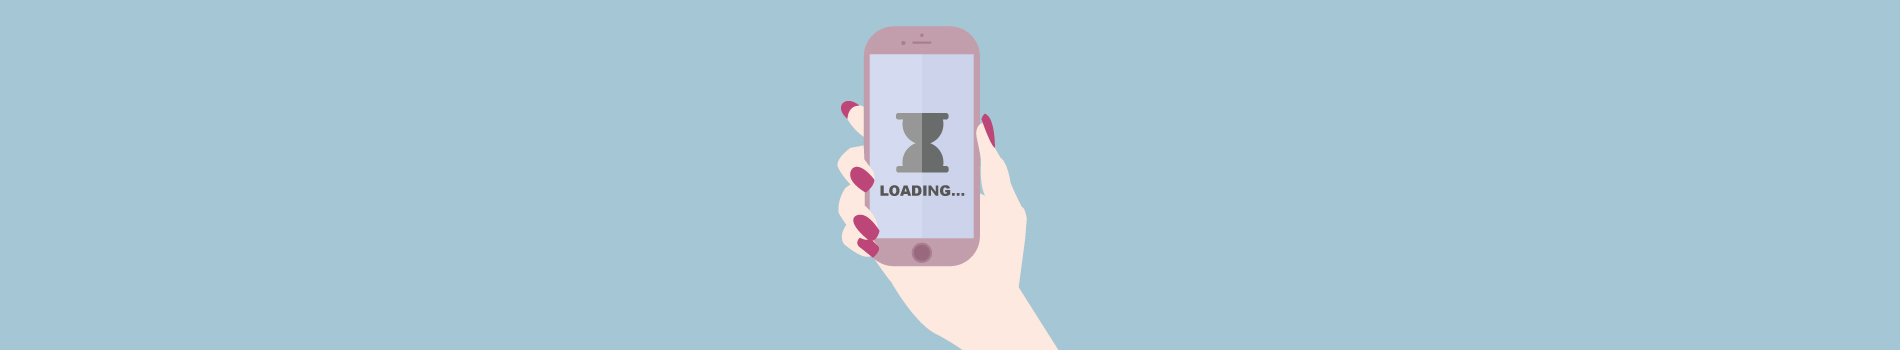 Slow-loading websites, due to poor hosting, can cause visitors to leave, especially on mobile devices.